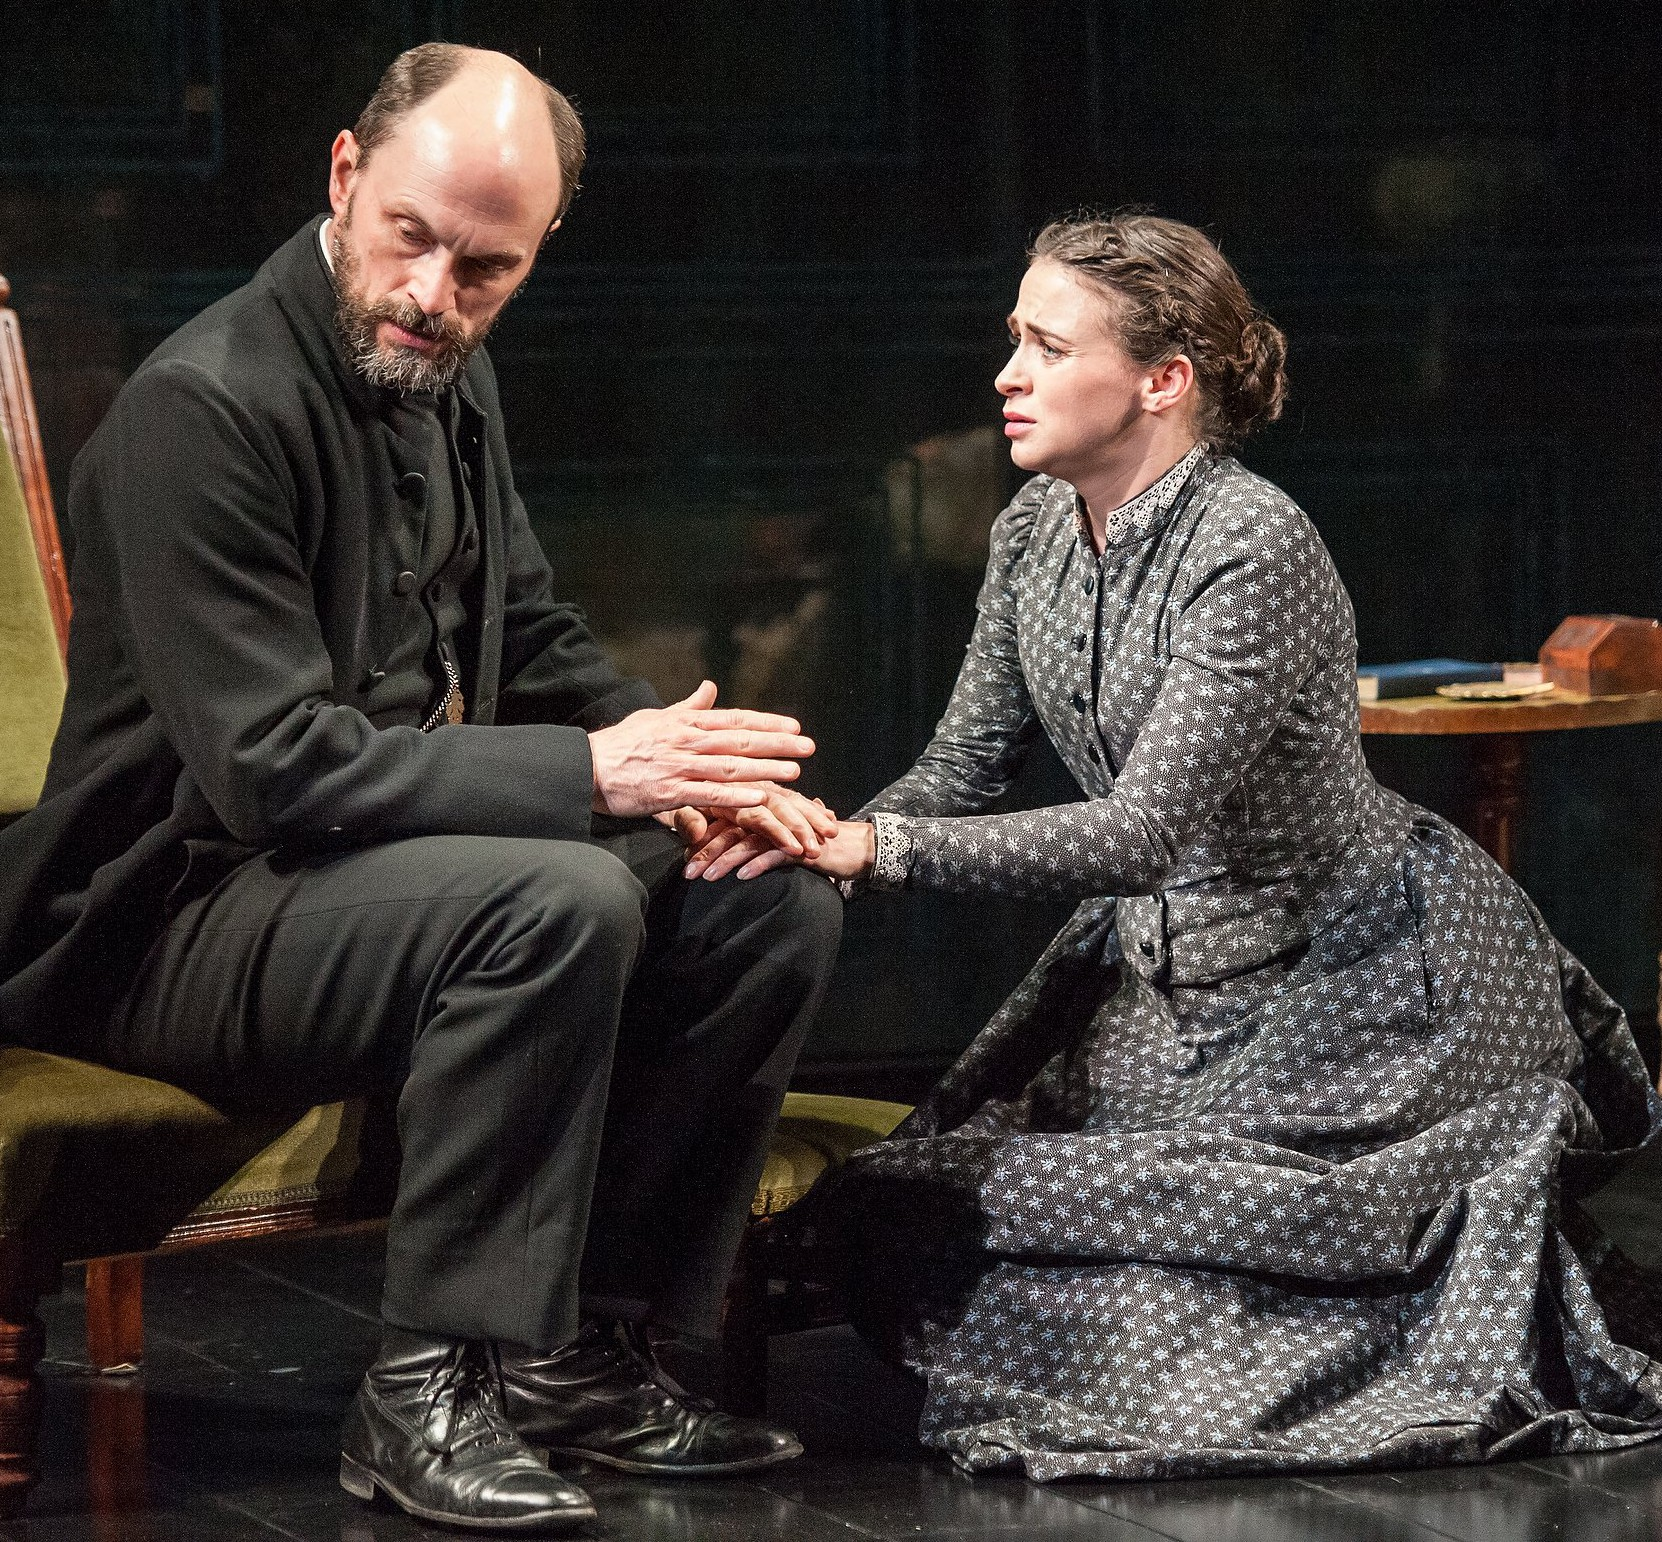 ghosts henrik ibsen Ghosts, by henrik ibsen, takes place in the home of the wealthy widow, mrs alving regina engstrand, the young servant of mrs alving, is attending to her duties when she reluctantly accepts a visit from her wayward father, jakob engstrand.